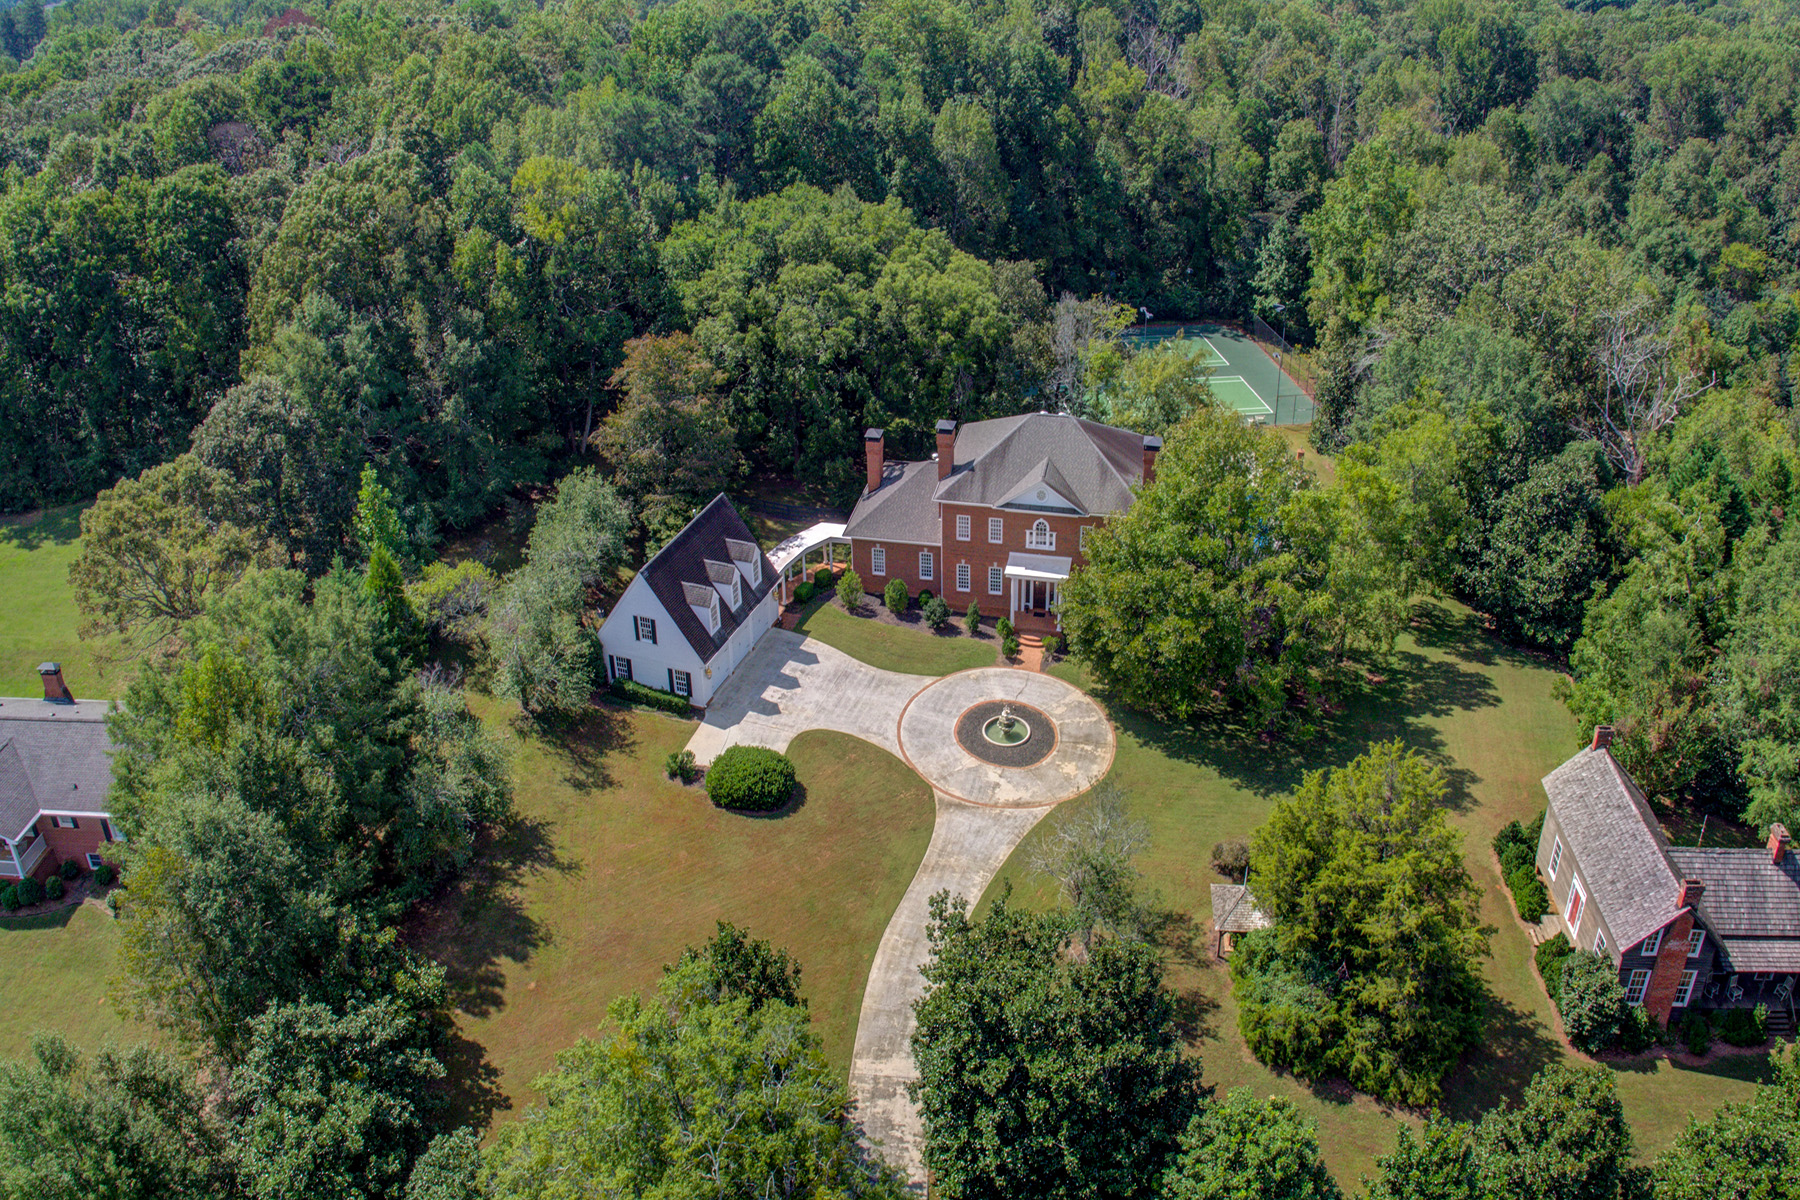 Single Family Homes for Sale at Historical Gated Oasis on 4.72 Acres - Bring Your Horses - Beautiful Estate 1650 Sever Road, Lawrenceville, Georgia 30043 United States